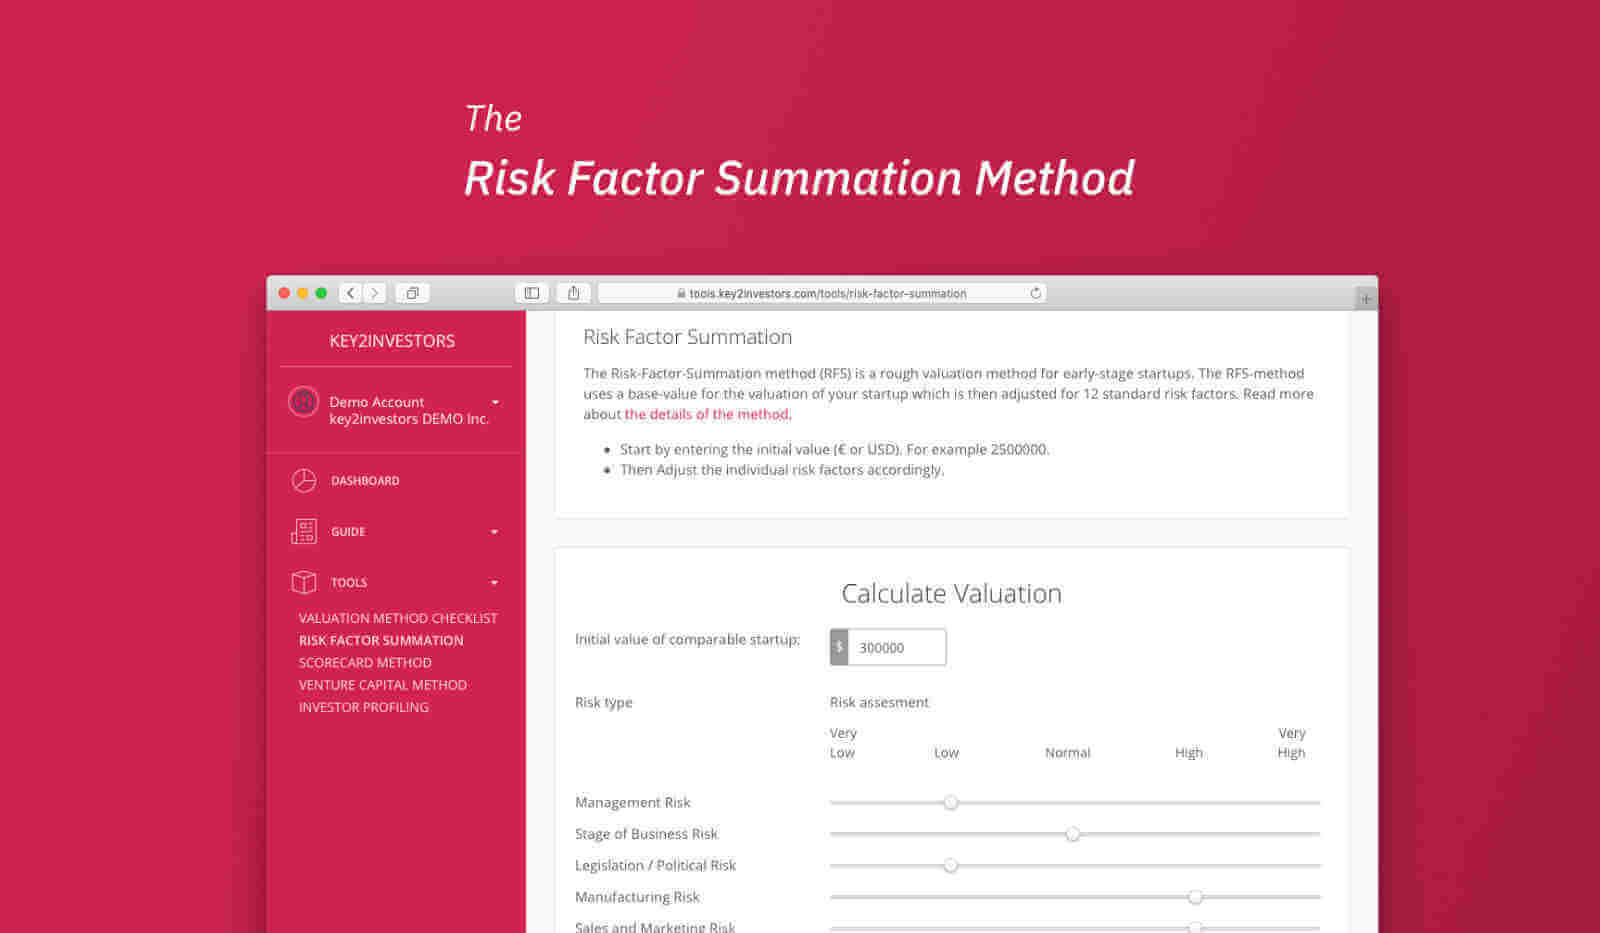 Risk Factor Summation Method Explained